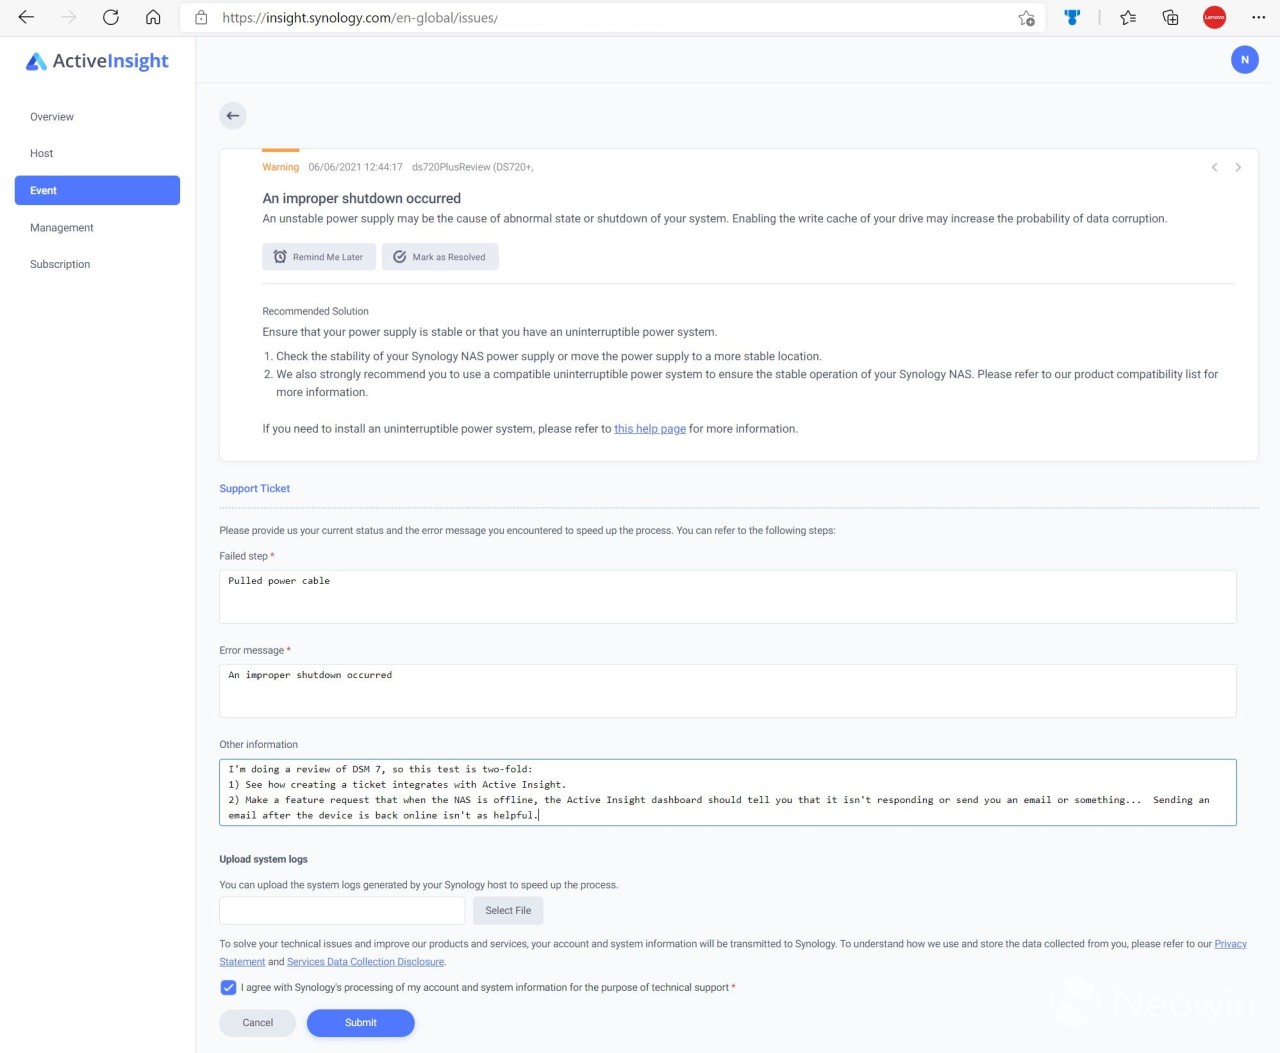 Submitting a ticket in Synology Active Insight screen